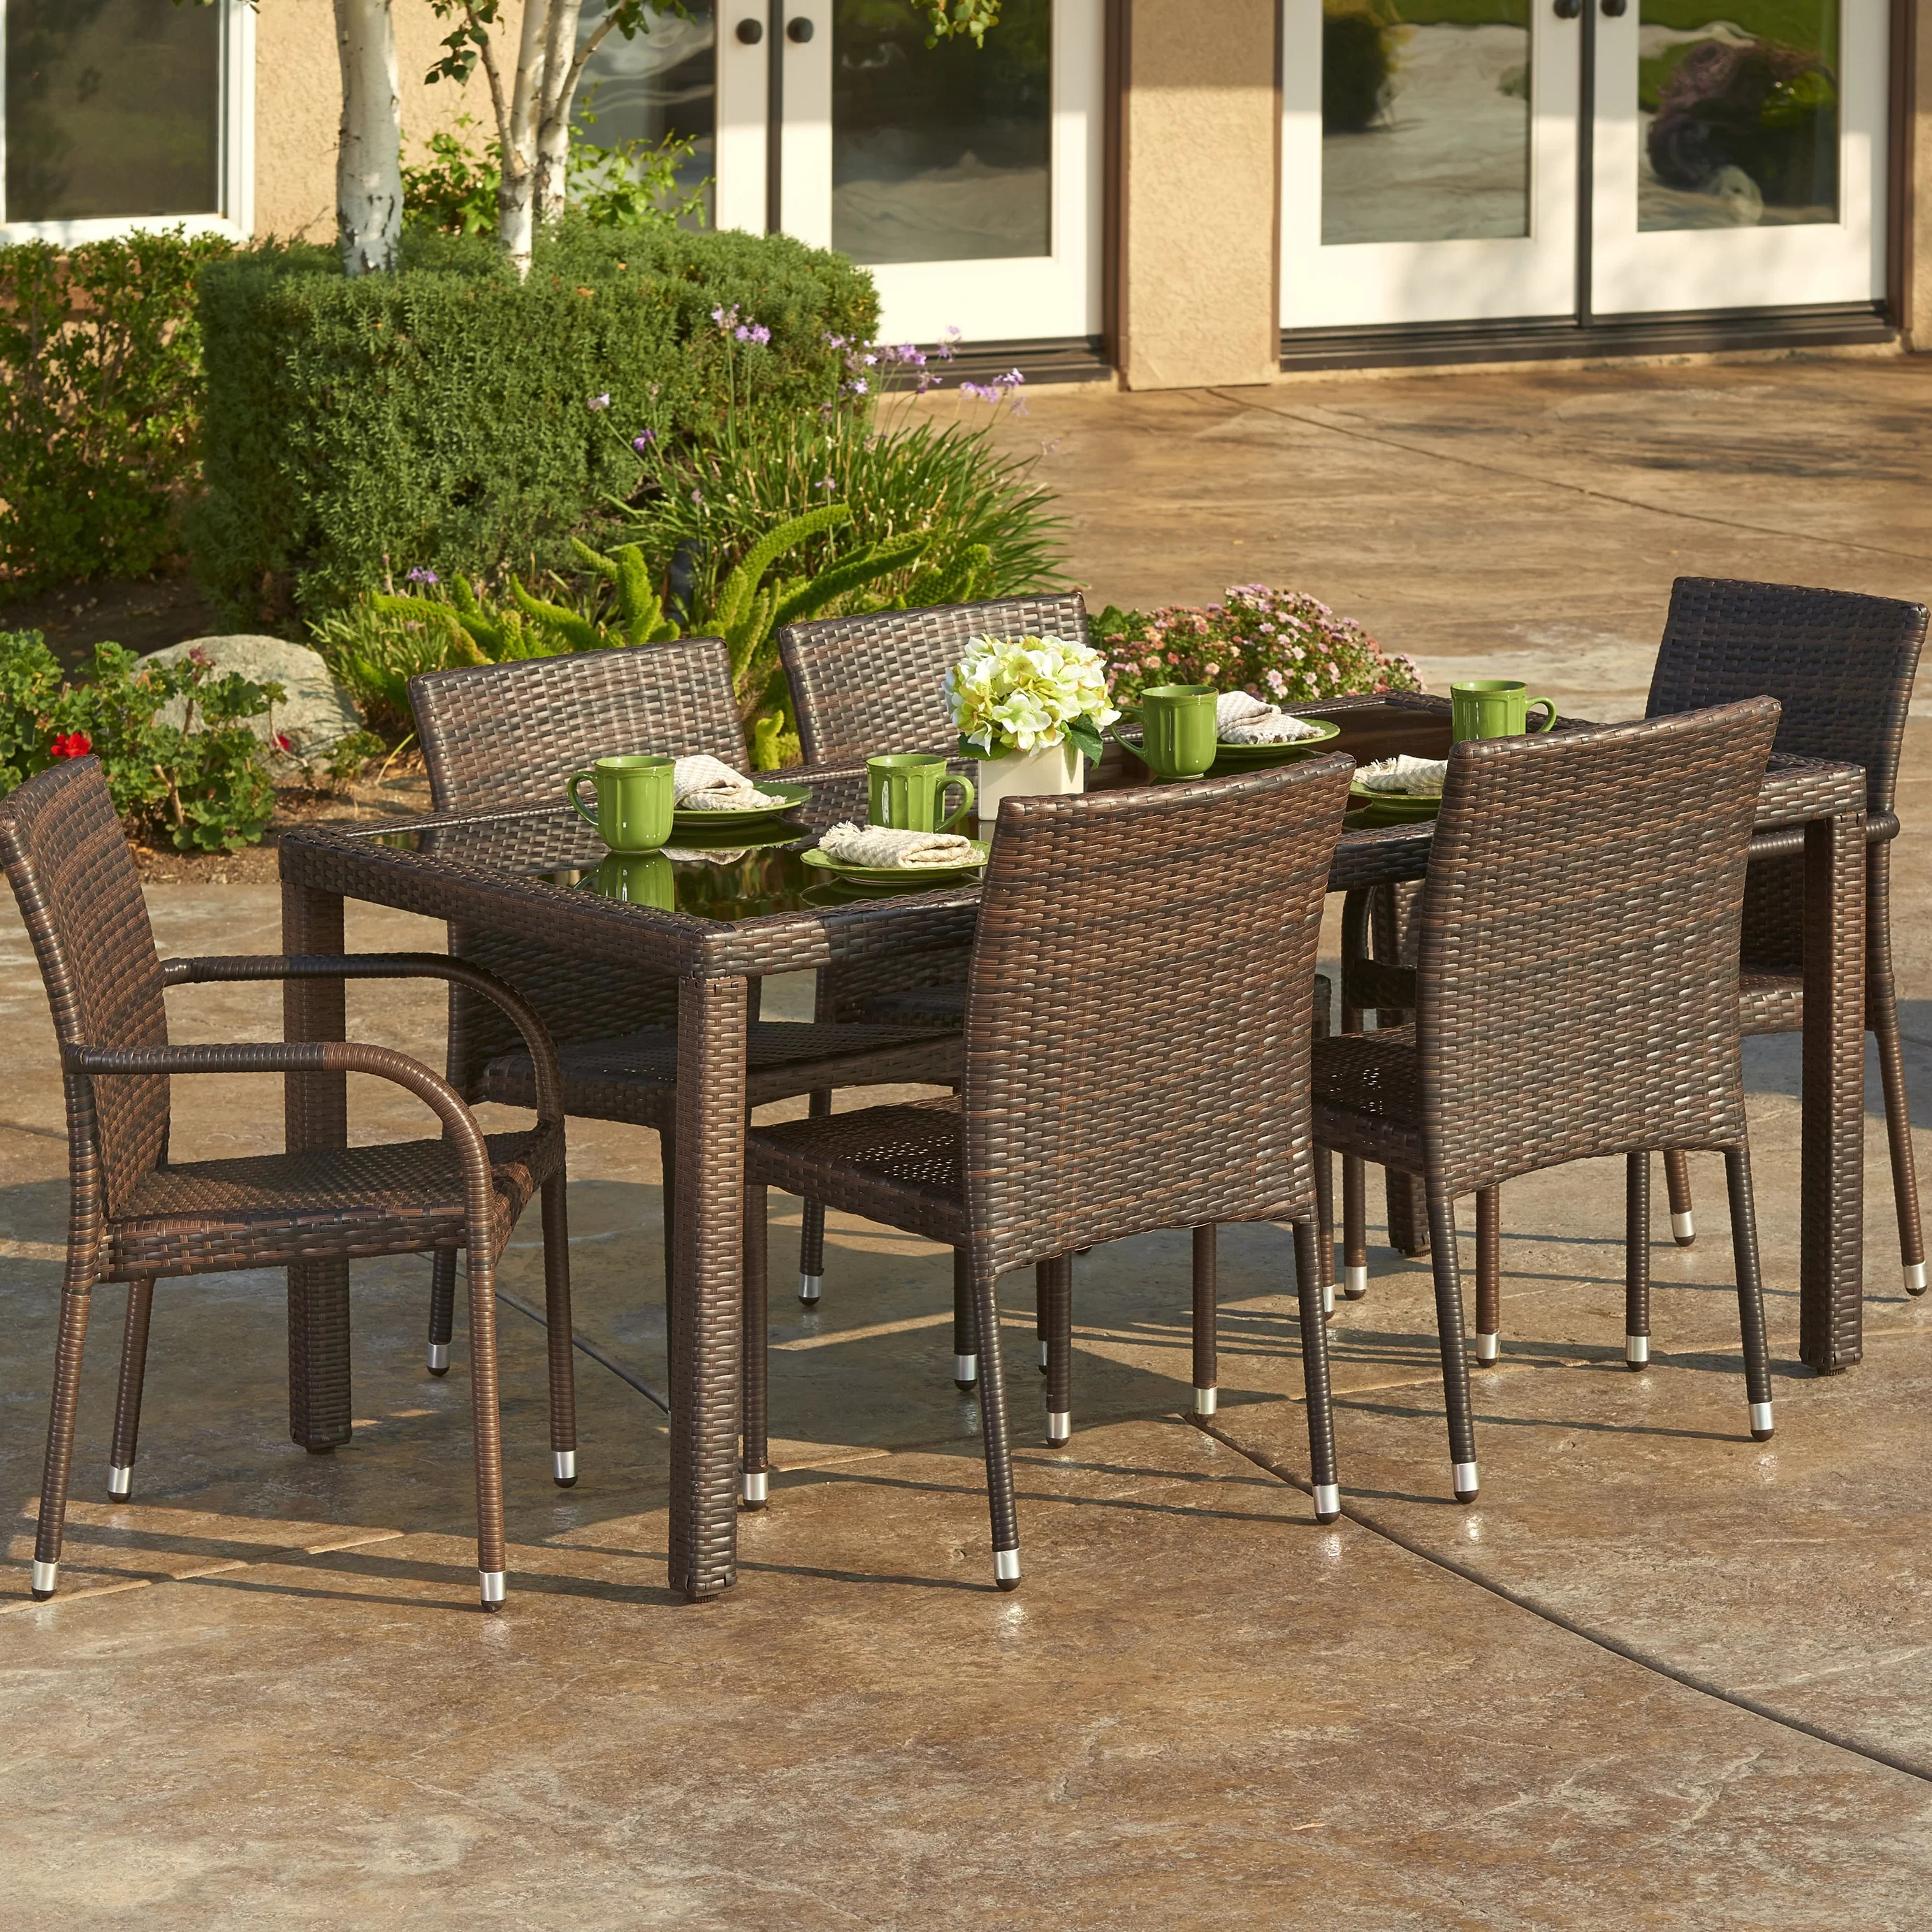 Outdoor Patio Furniture Dining Table 7 Piece Outdoor Wicker Dining Set